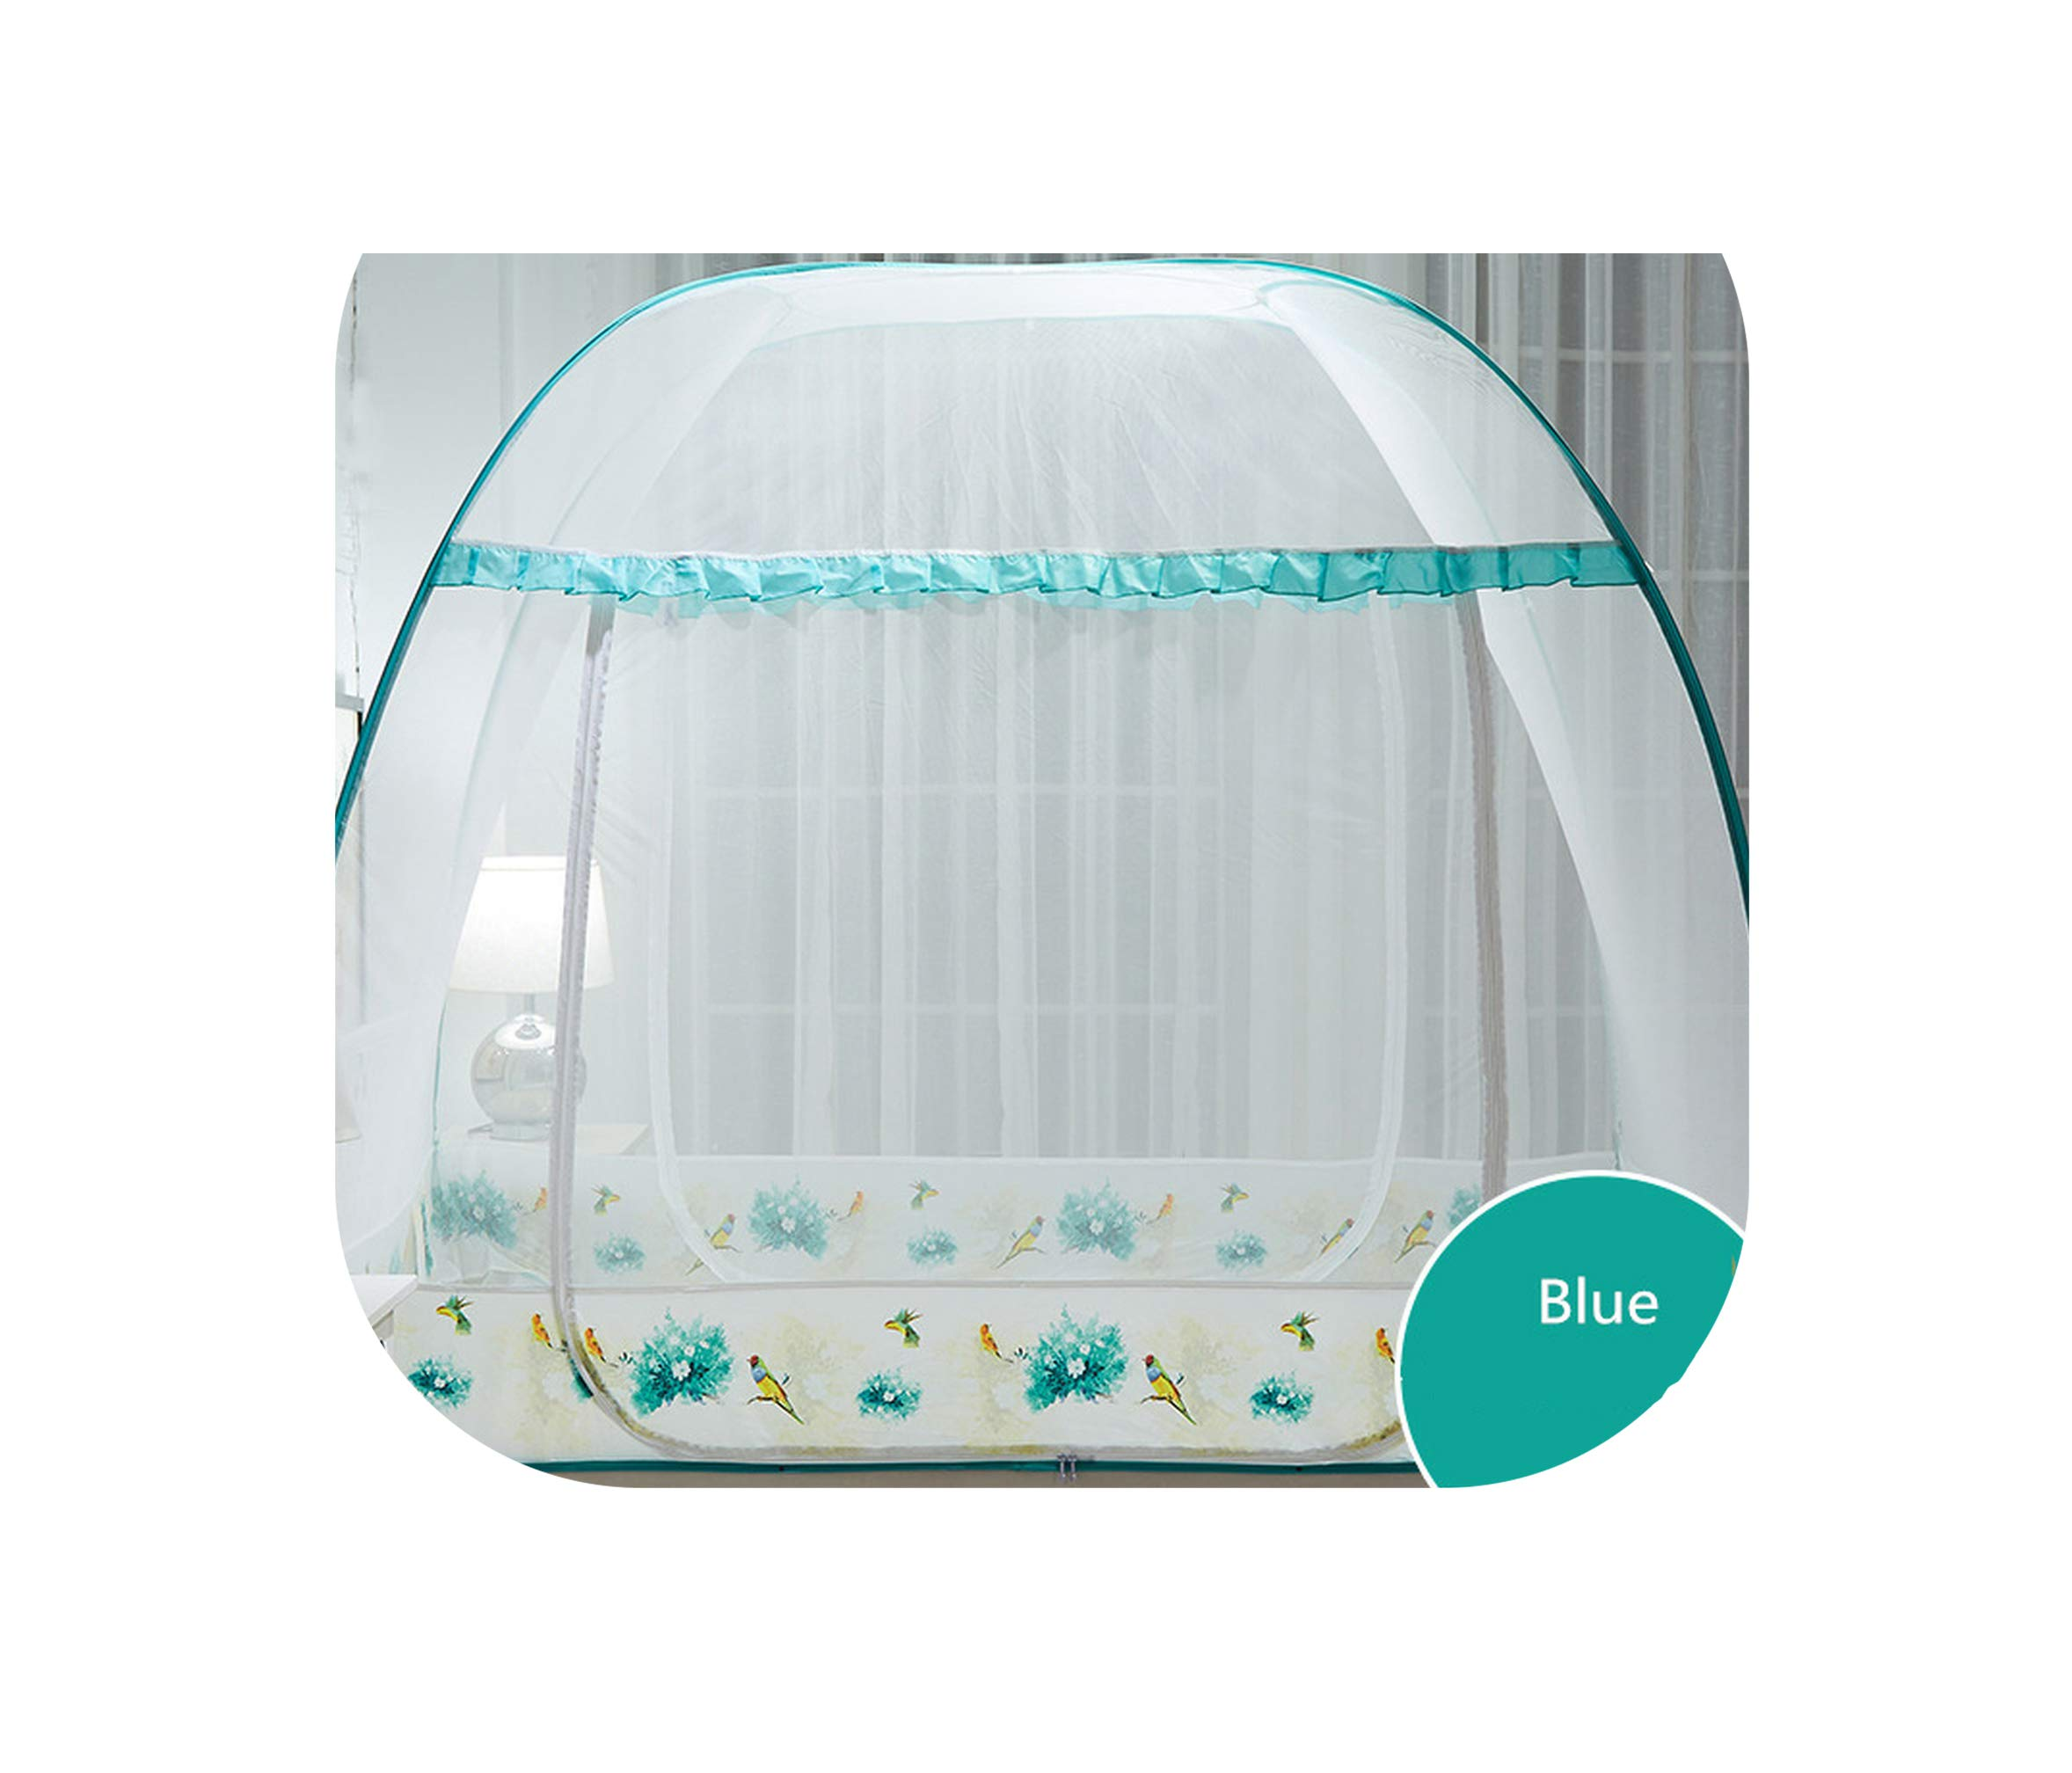 Large Square Mosquito Net for 1.8m Double Bed Insect Reject Bedding Net Three Door with Zipper Folding Portable Bed Net 13 Color,TK bainiaolanquandi,1.8m (6 feet) Bed